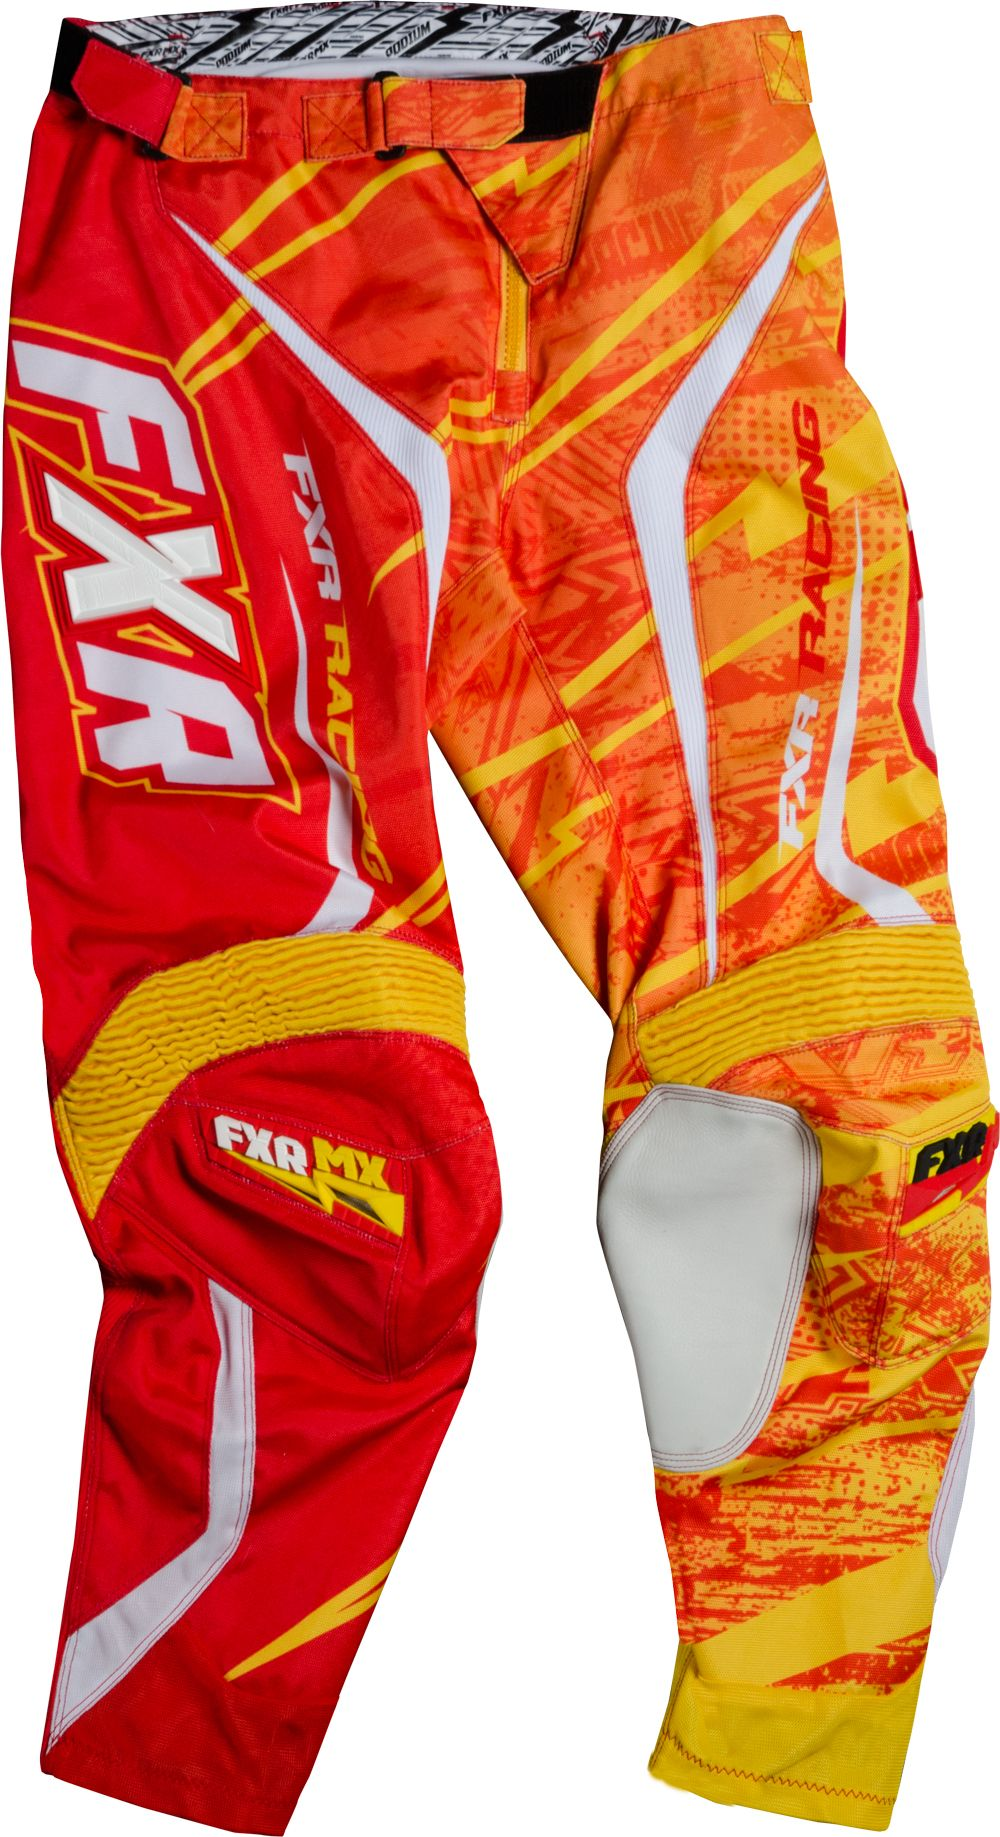 Fxr Racing Dirtbike Mx Gear Podium Warp Mx Pant Yellow Red Riding Outfit Riding Gear Dirt Bikes